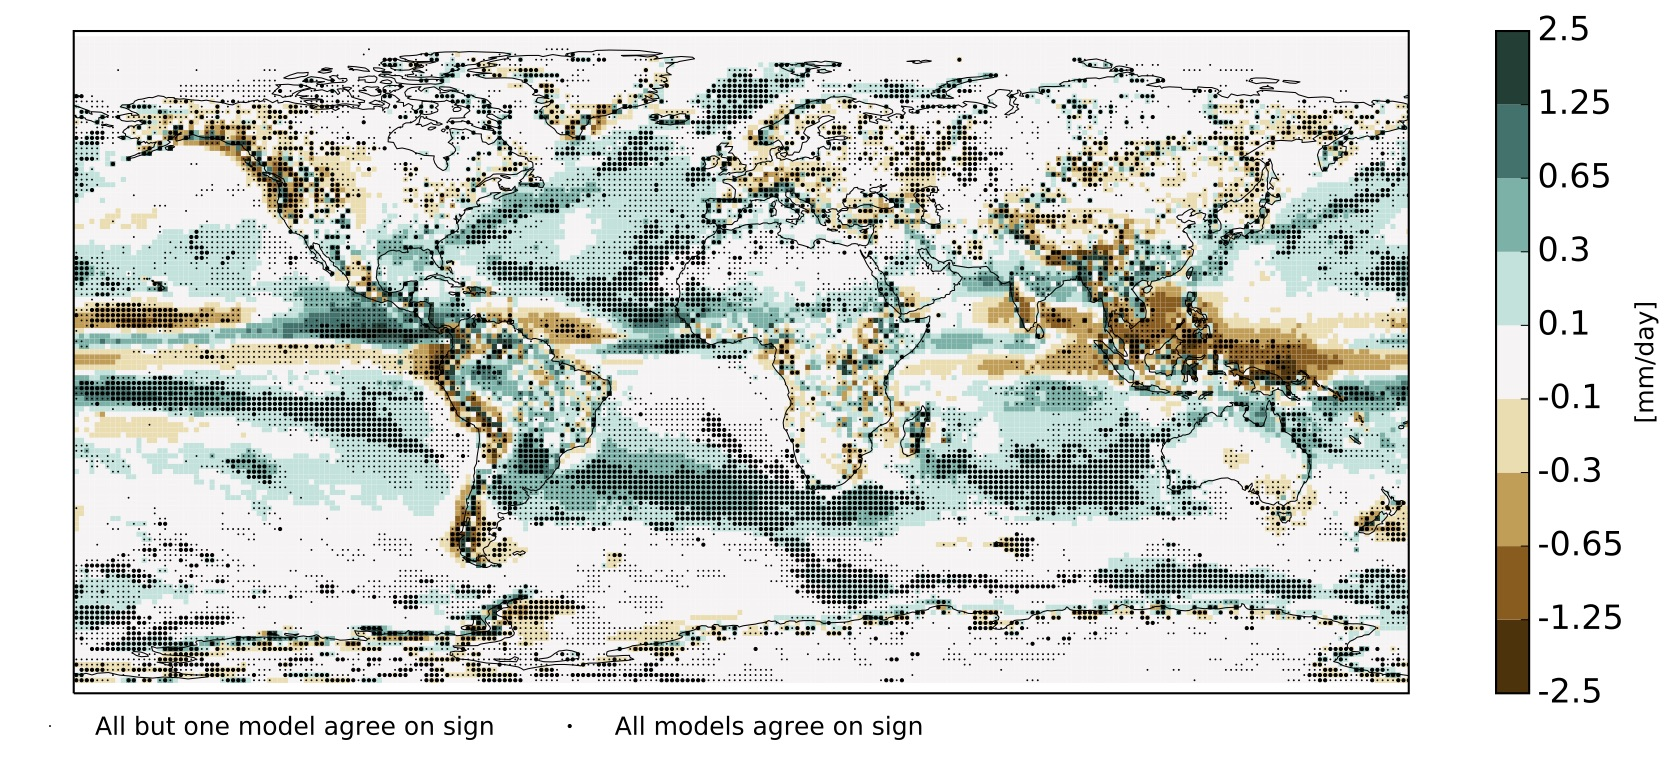 Comparing global precipitation in multiple high- vs low-resolution climate models reveals an increase of precipitation over orography, storm tracks entrance regions, river basins in South America, and the Sahel, with a precipitation decrease over the Maritime Continent.